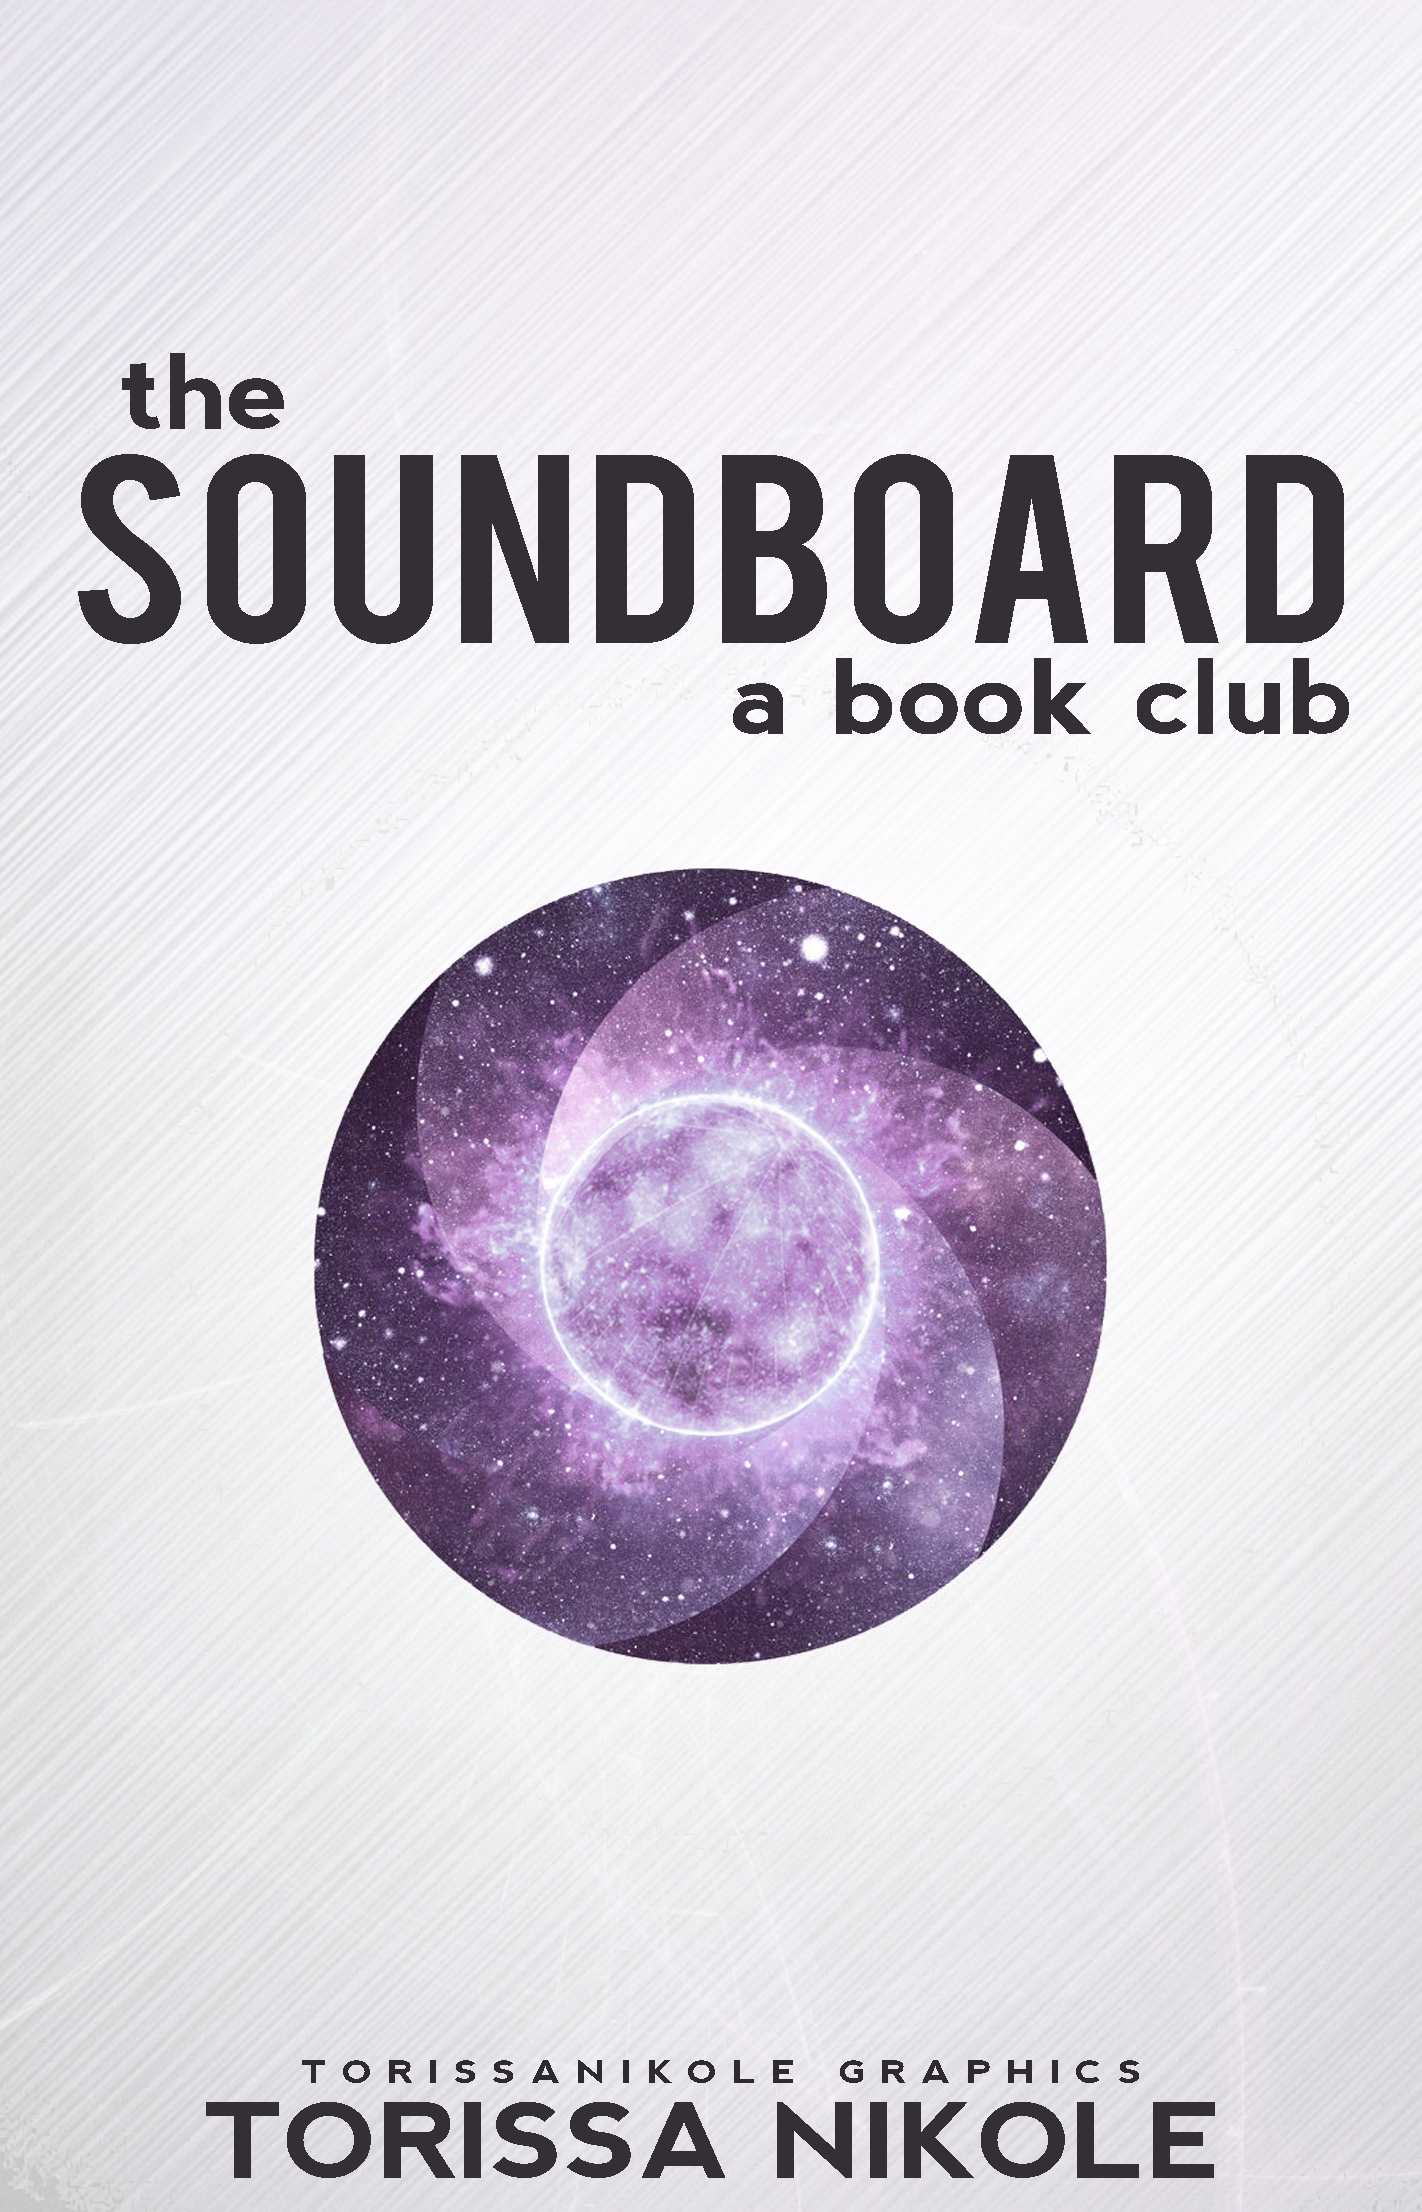 Eternal Graphics (CLOSED FOREVER) - The Soundboard: A Book